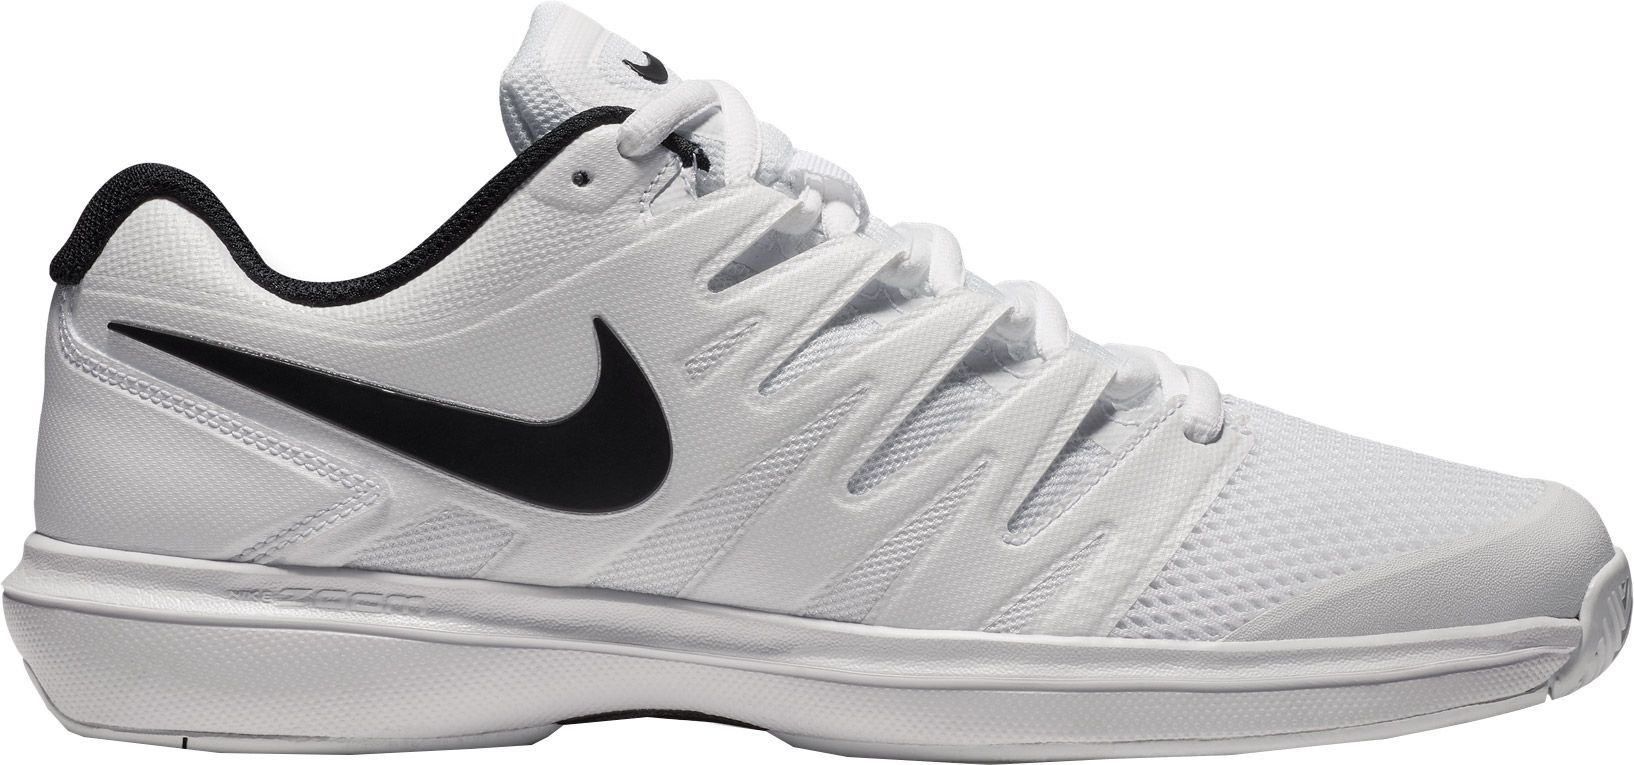 bfd1ccac3cb6 Nike Men s Air Zoom Prestige Tennis Shoes